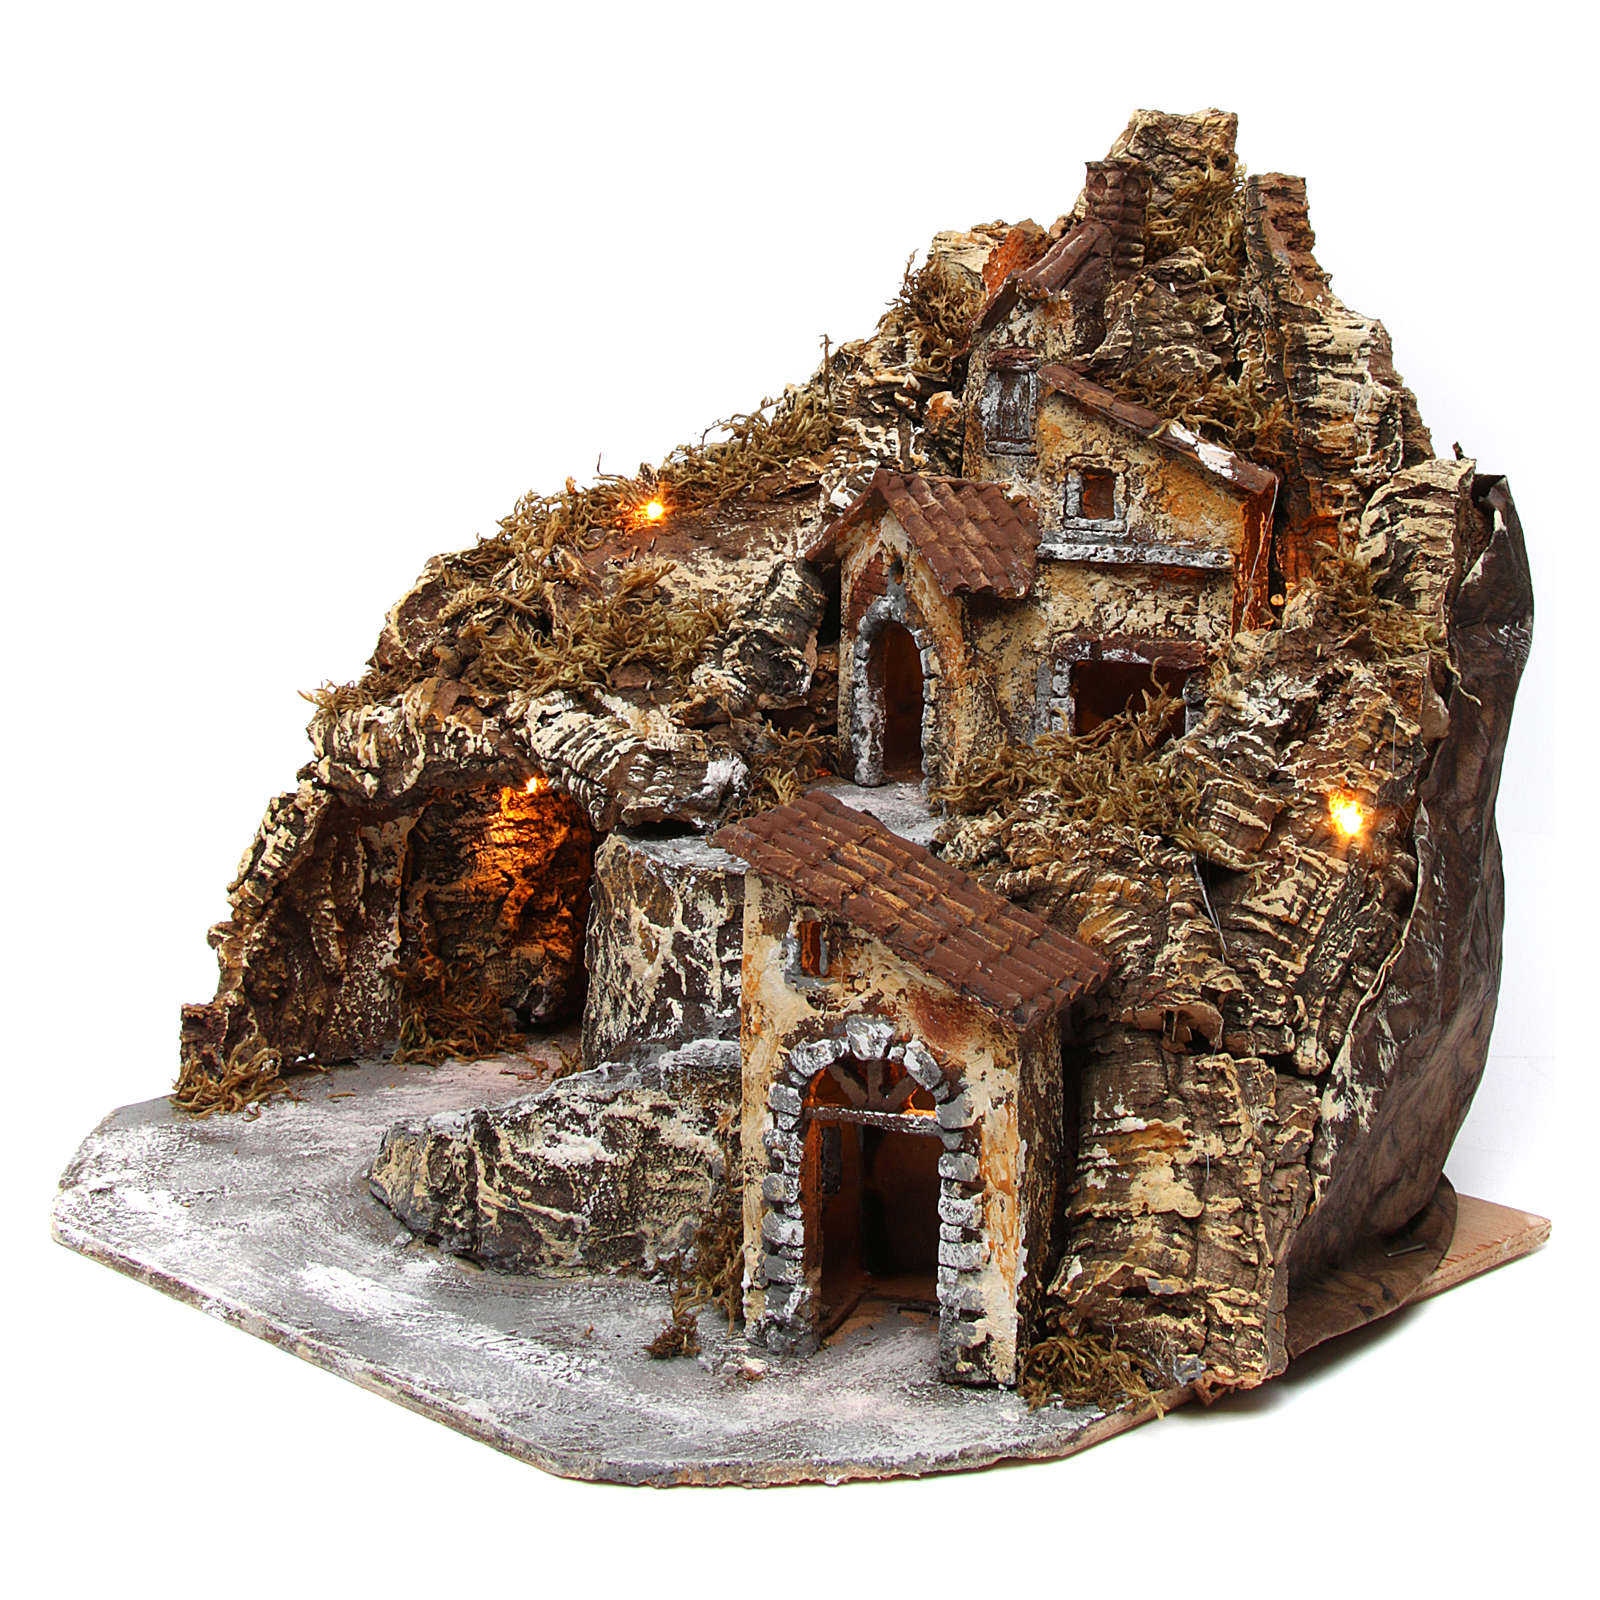 Hamlet with lights and cave in wood and cork for Neapolitan Nativity Scene 35x45x35 cm 4